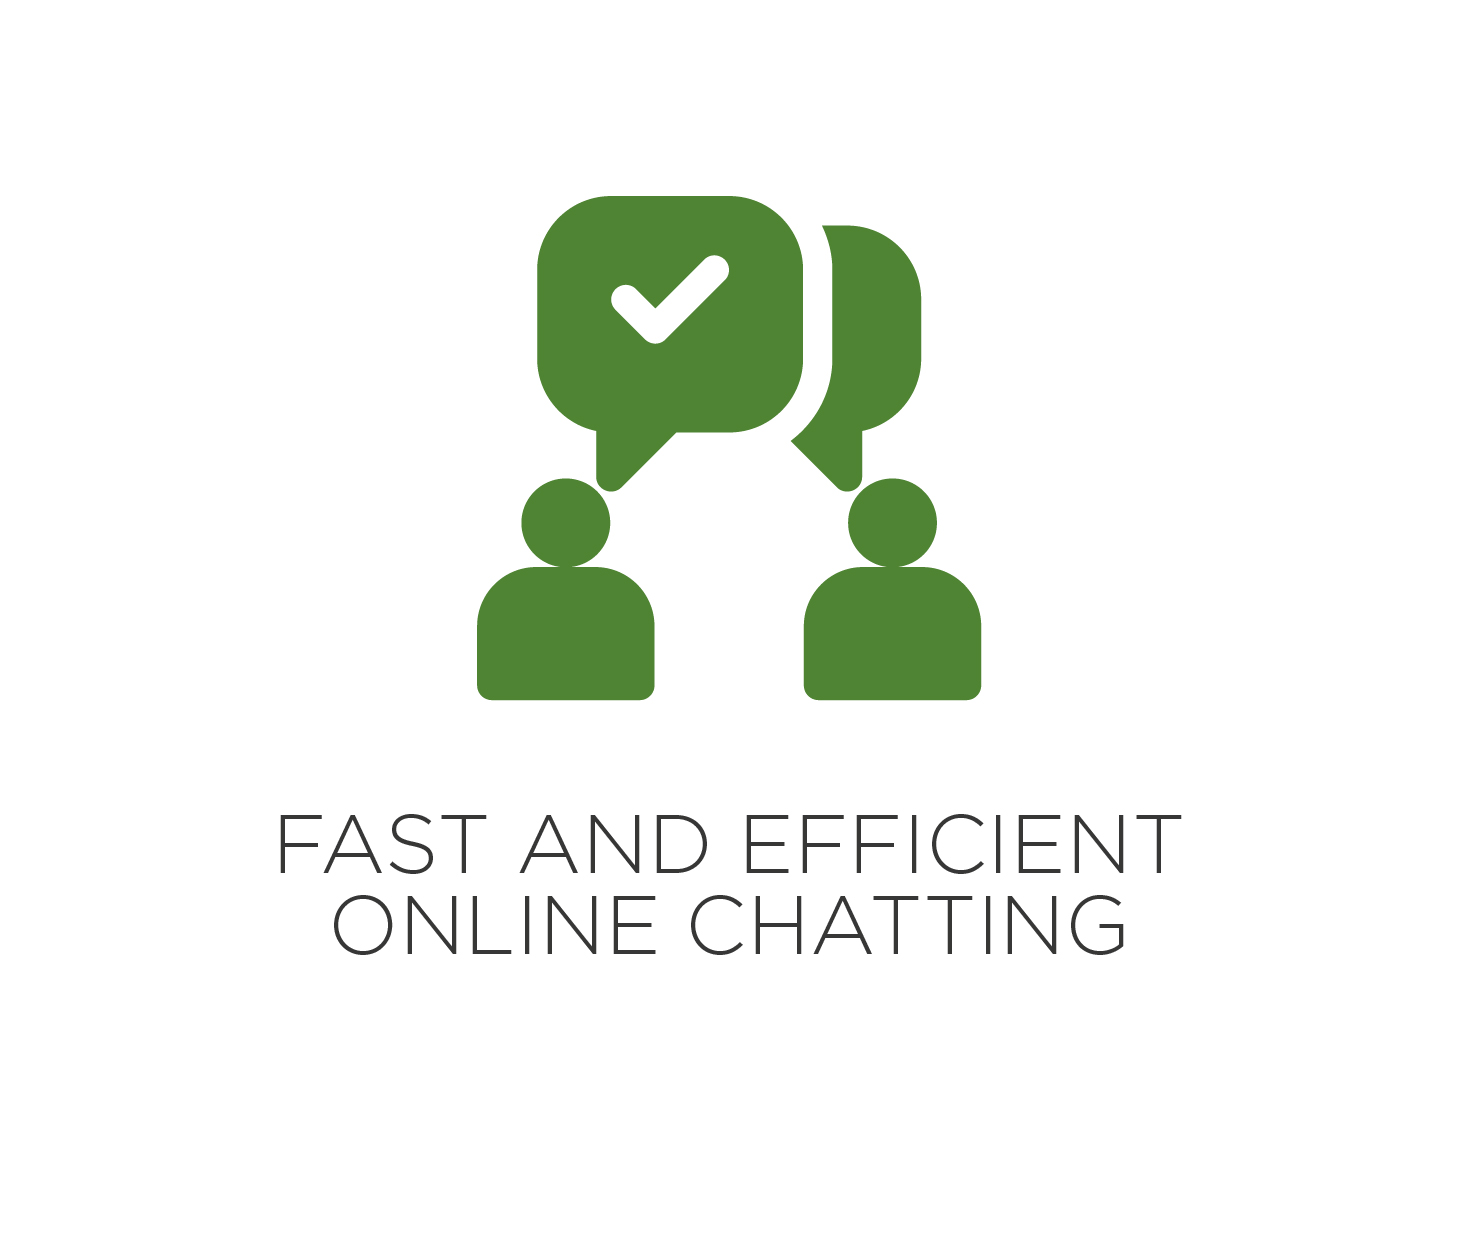 Online Chatting